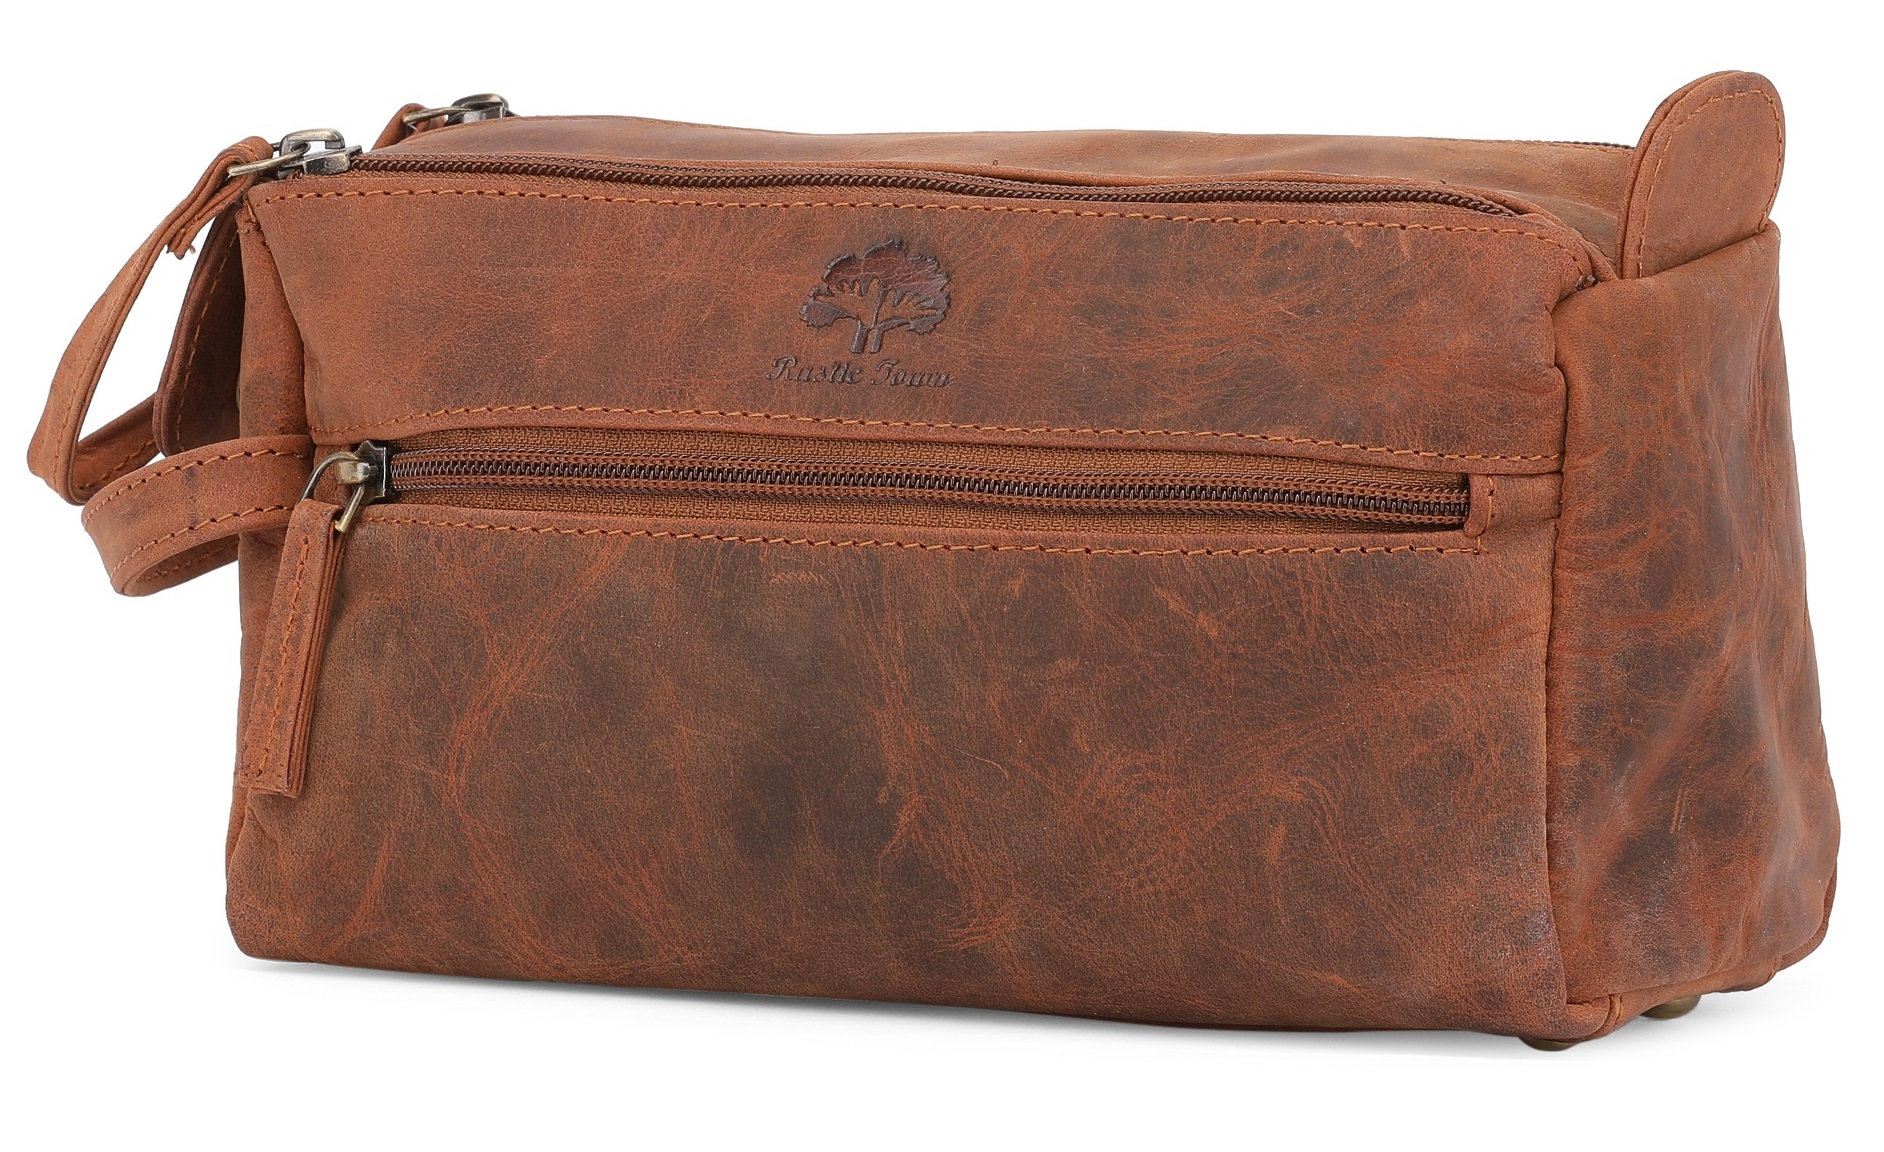 614a2ea99944 Leather Toiletry Bag for Men - Hygiene Organizer Travel Dopp Kit By Rustic  Town (Brown)